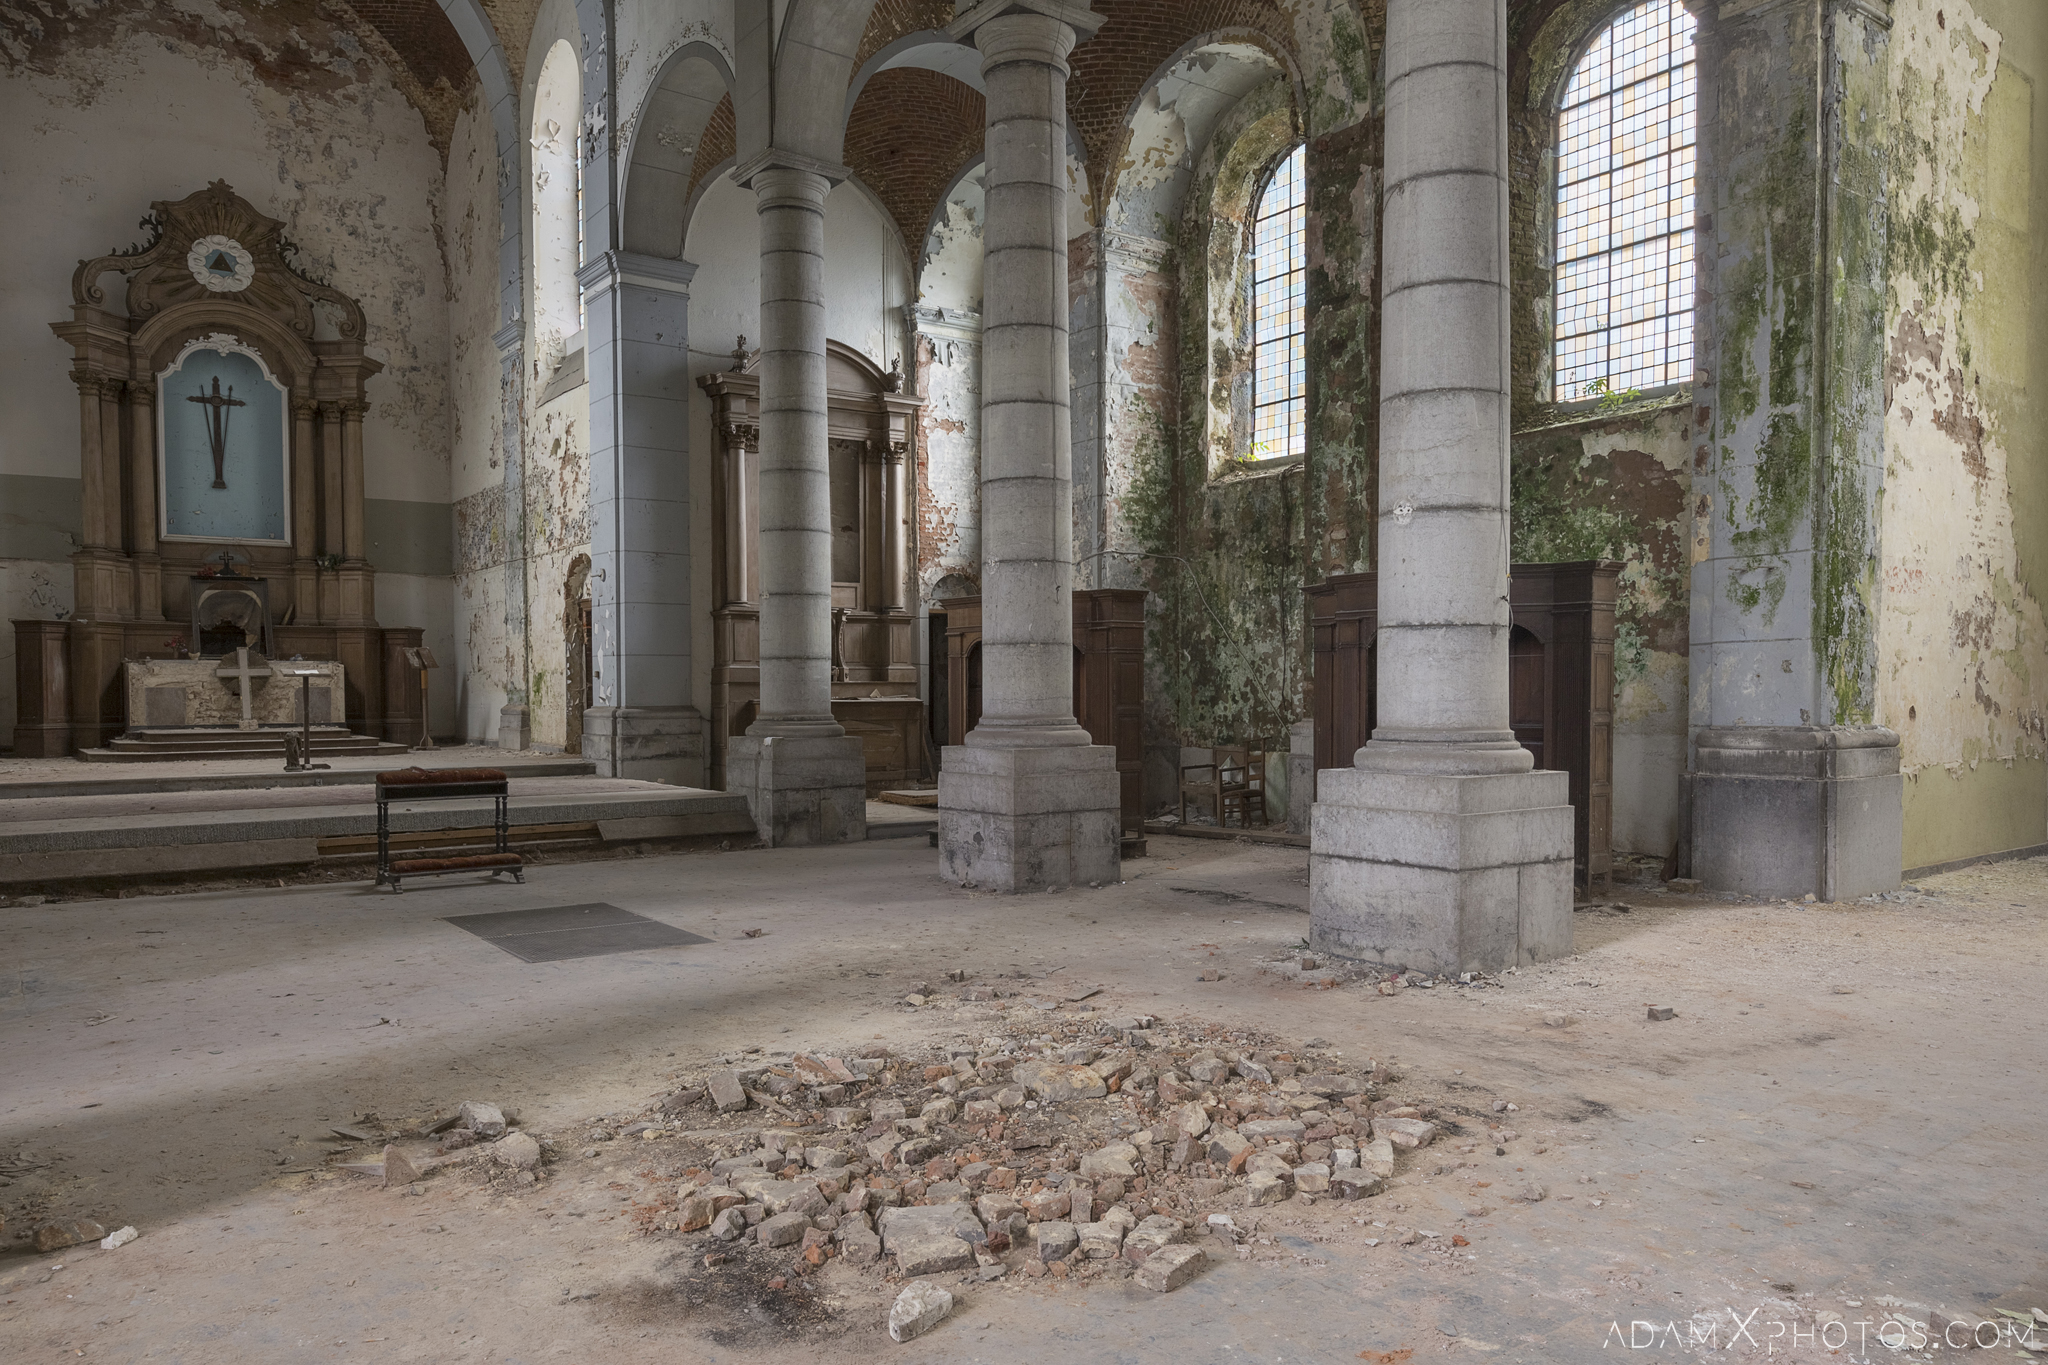 L'église Saint-Pierre Church of Decay Grâce-Hollogne Liege Adam X Urban Exploration Belgium Access 2017 Abandoned decay lost forgotten derelict location creepy haunting eerie